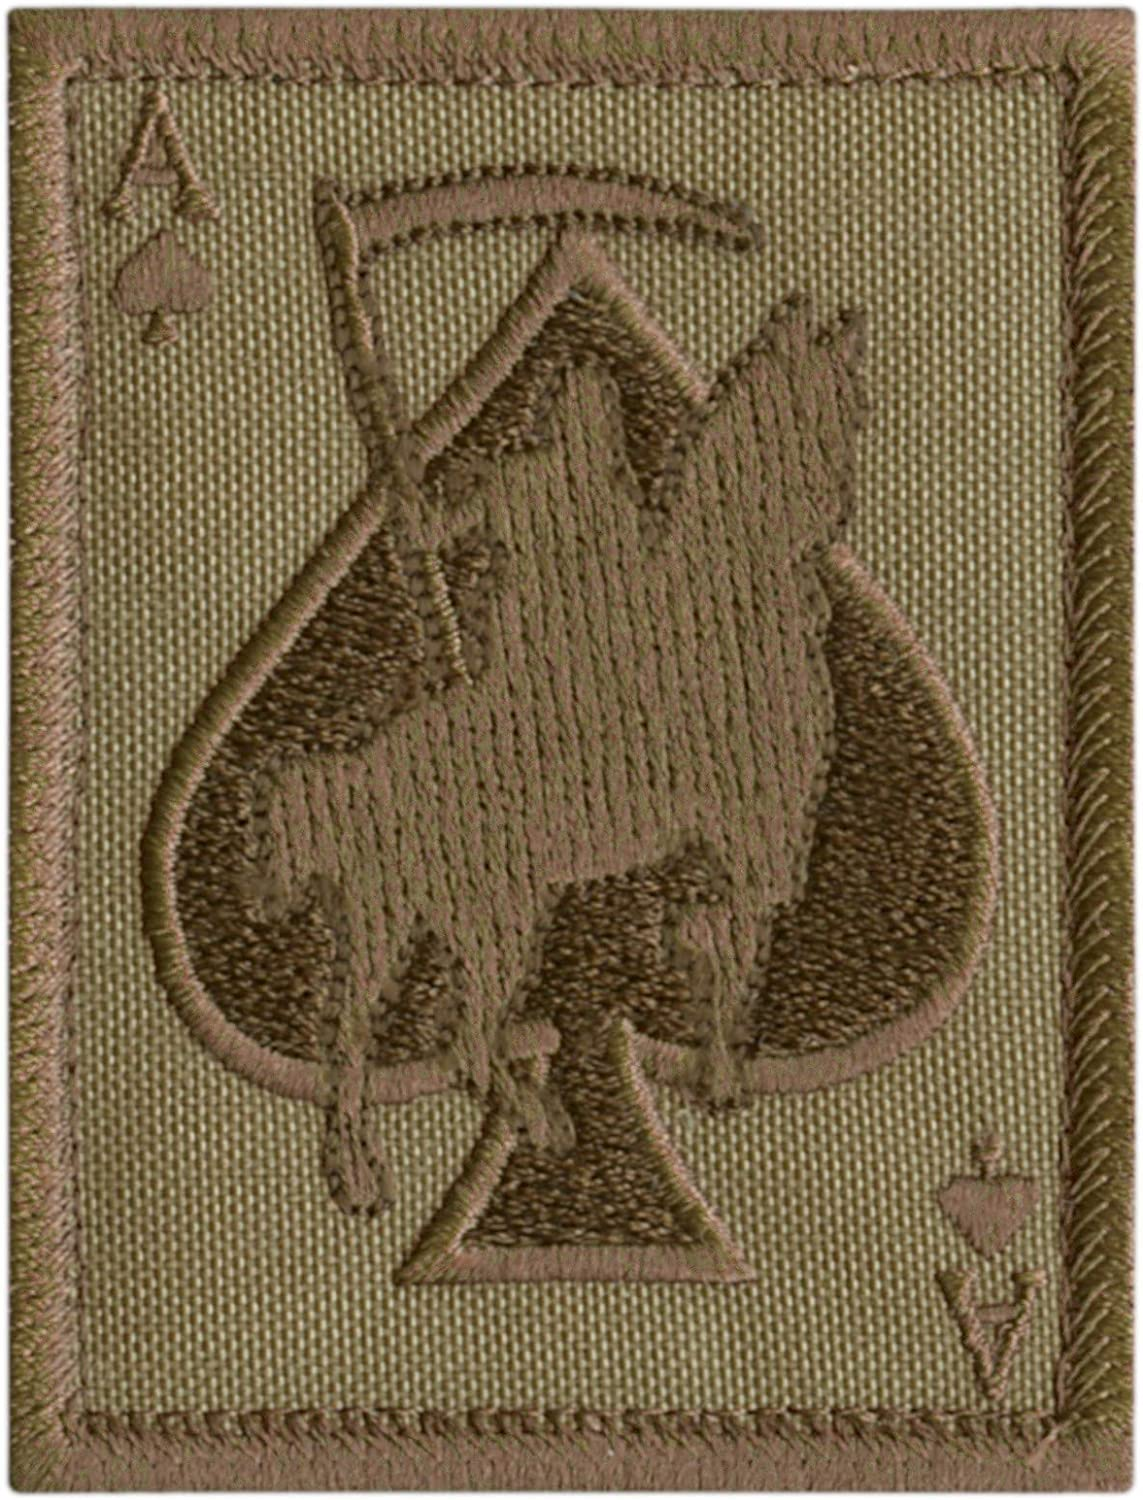 2AFTER1 Tan Coyote Ace of Spades Grim Reaper Death Card Morale Tactical Skull Skeleton Touch Fastener Patch